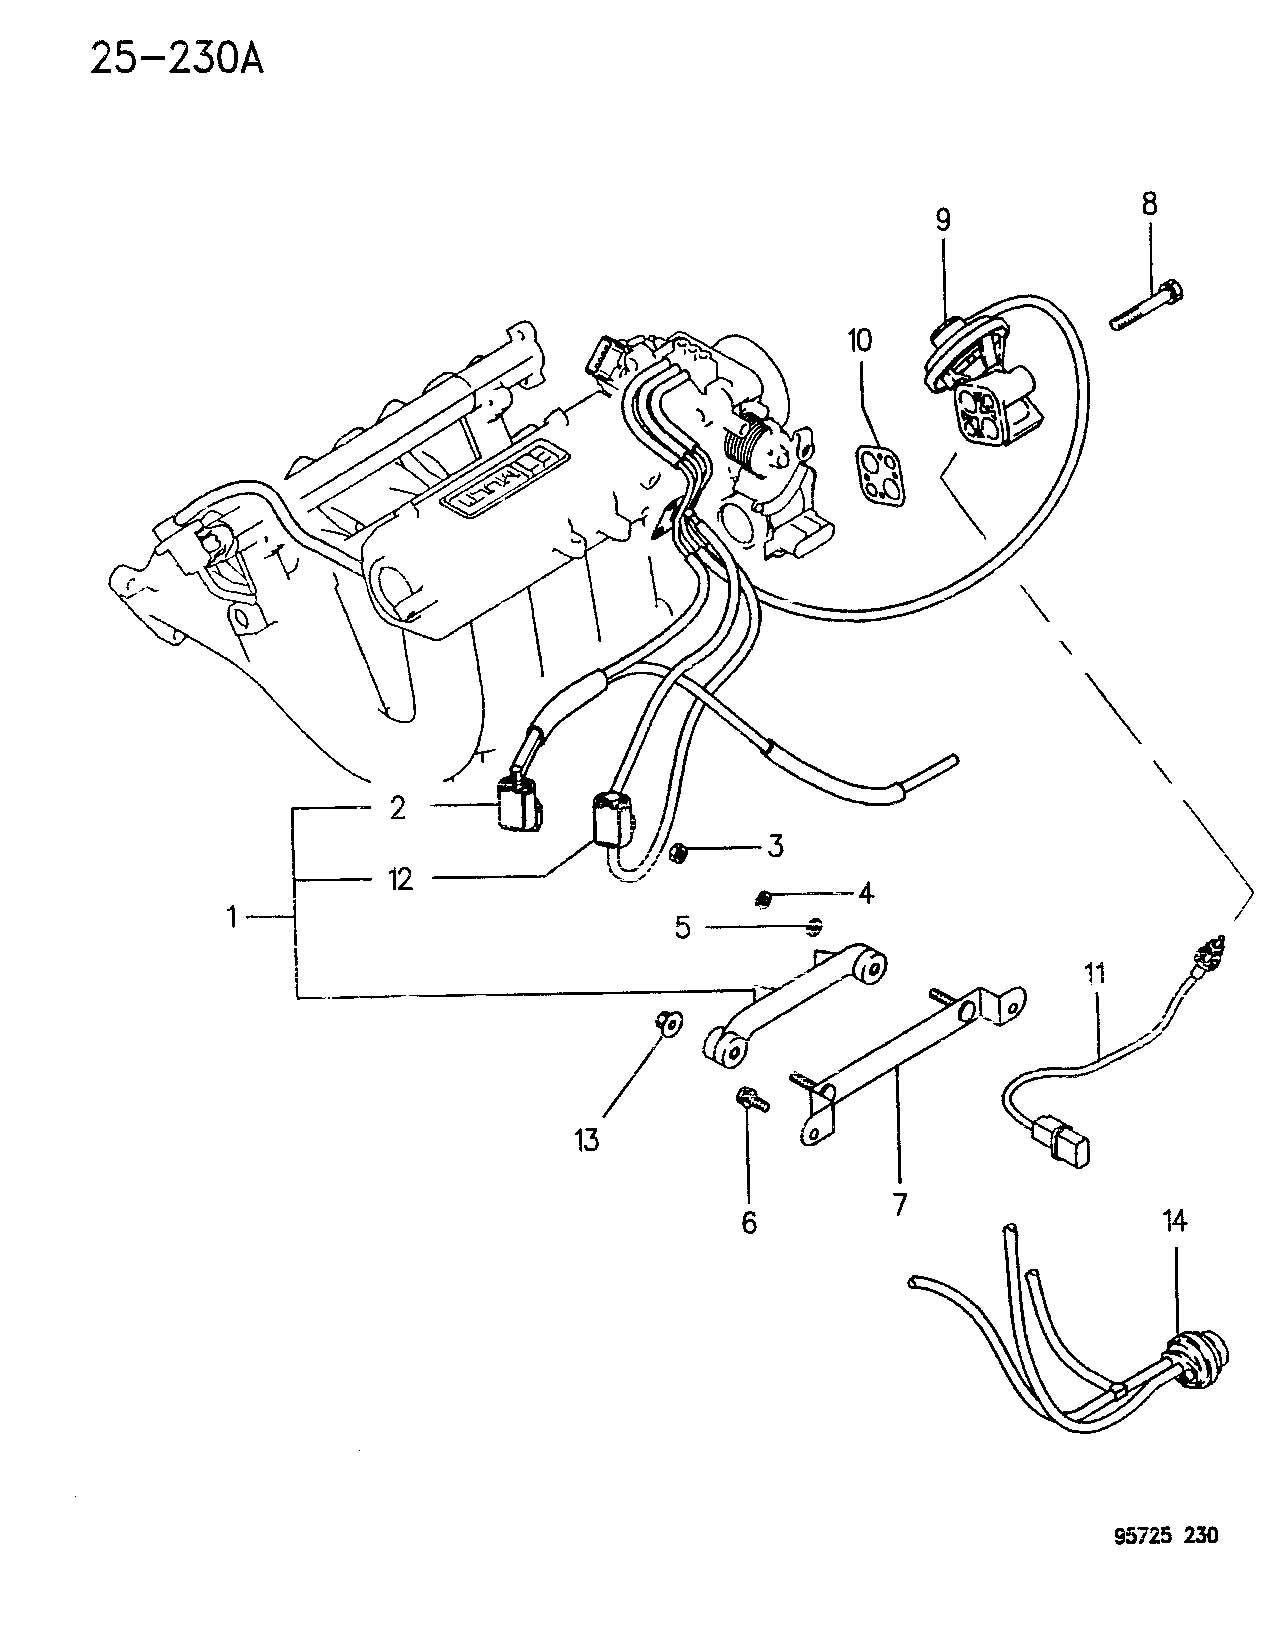 4g63 wiring diagram also bmw e46 throttle diagram additionally showassembly together with showassembly additionally dodge omni